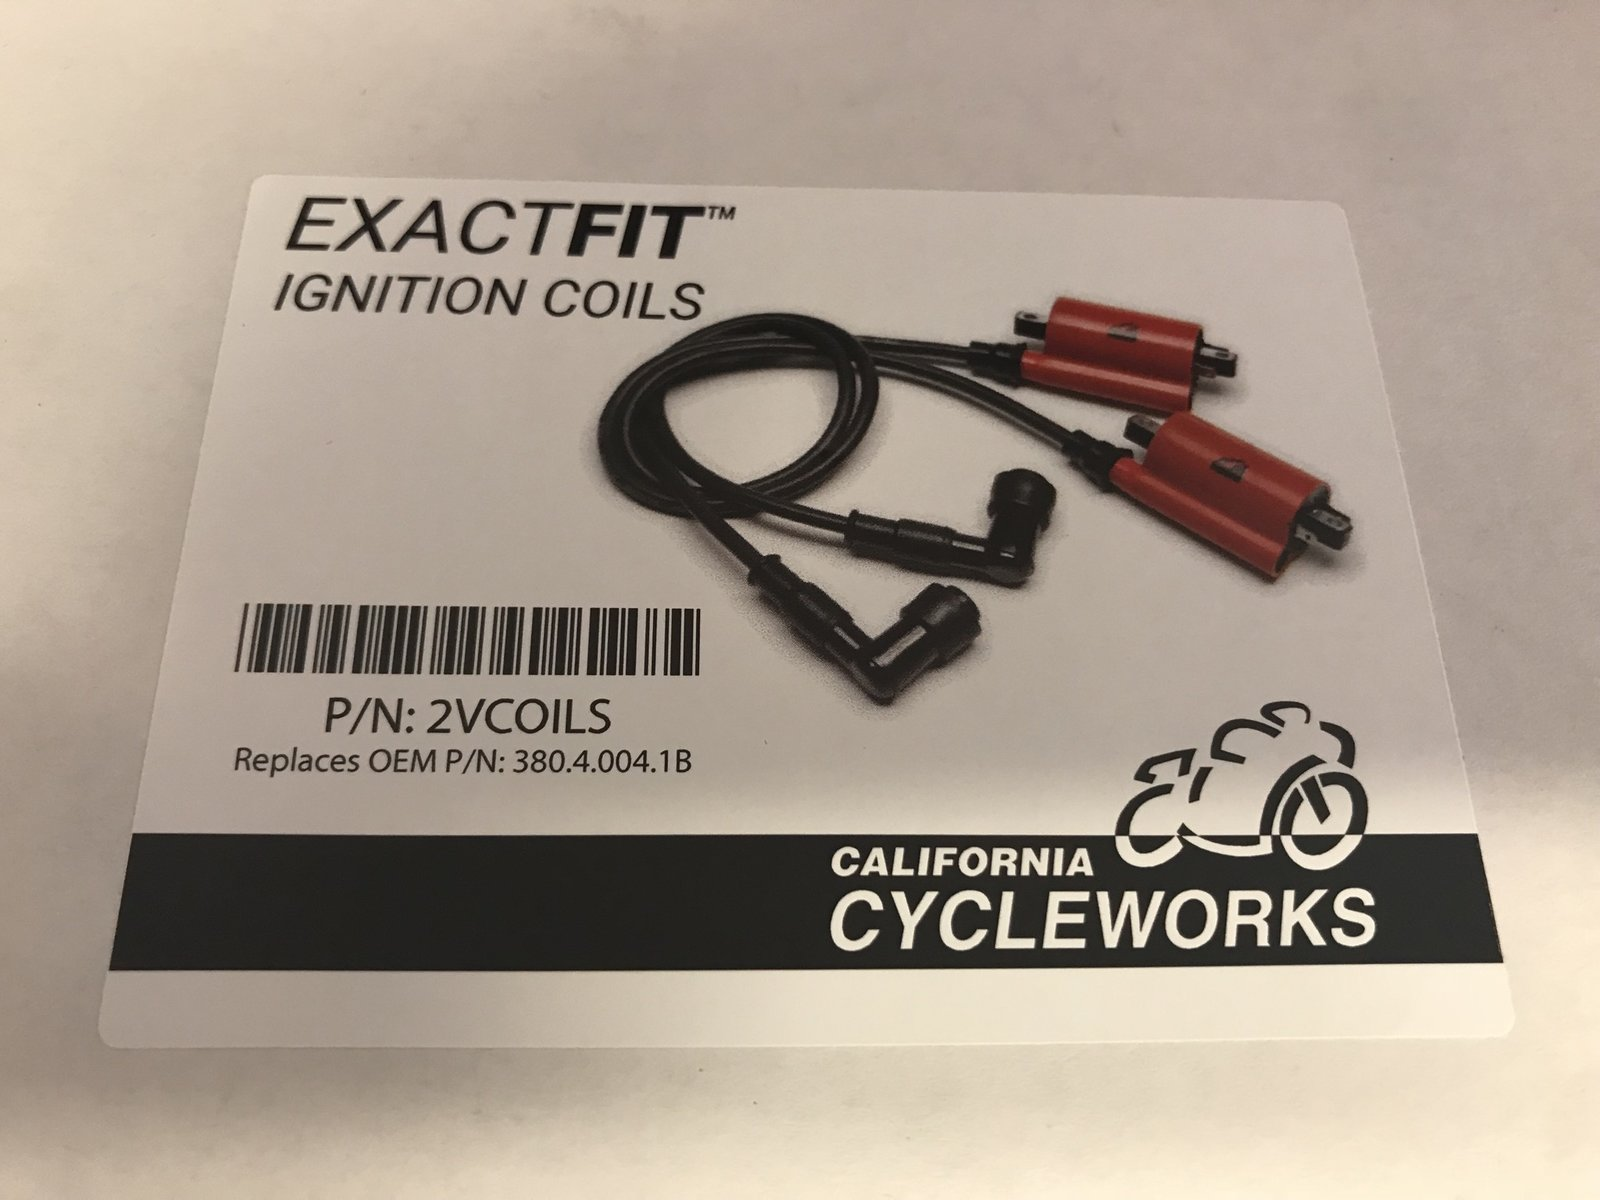 Help New Coils Now Bike Blows Fuse On Starting Ducati Forum 848 Evo Box 0e90f17a 48a2 4985 A6d2 6846aa7ee852jpeg